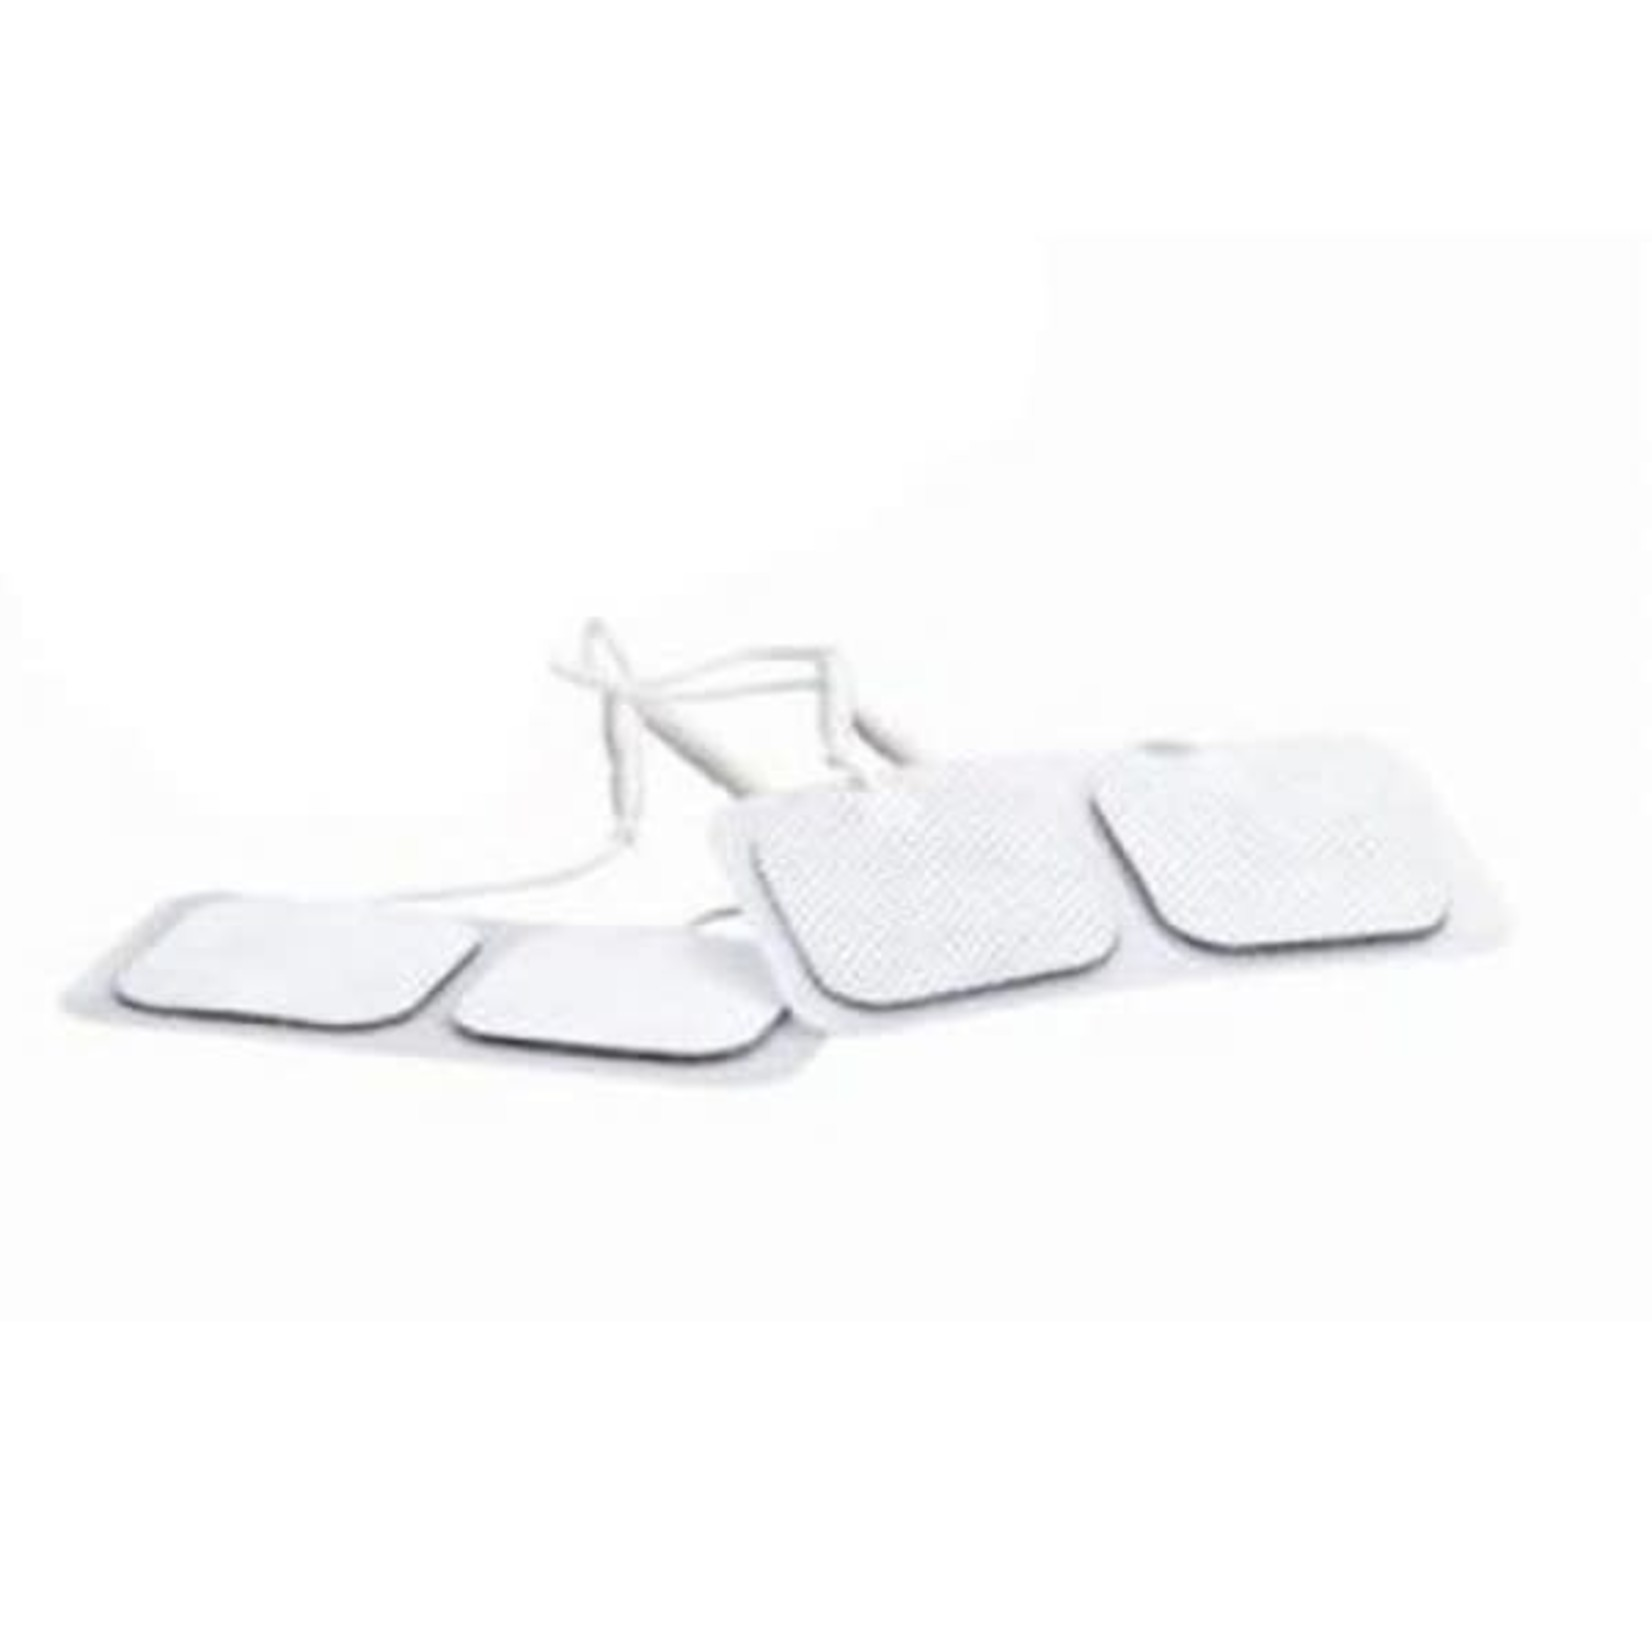 Quality of Life TENS Therapy Replacement Pads (2 pads)